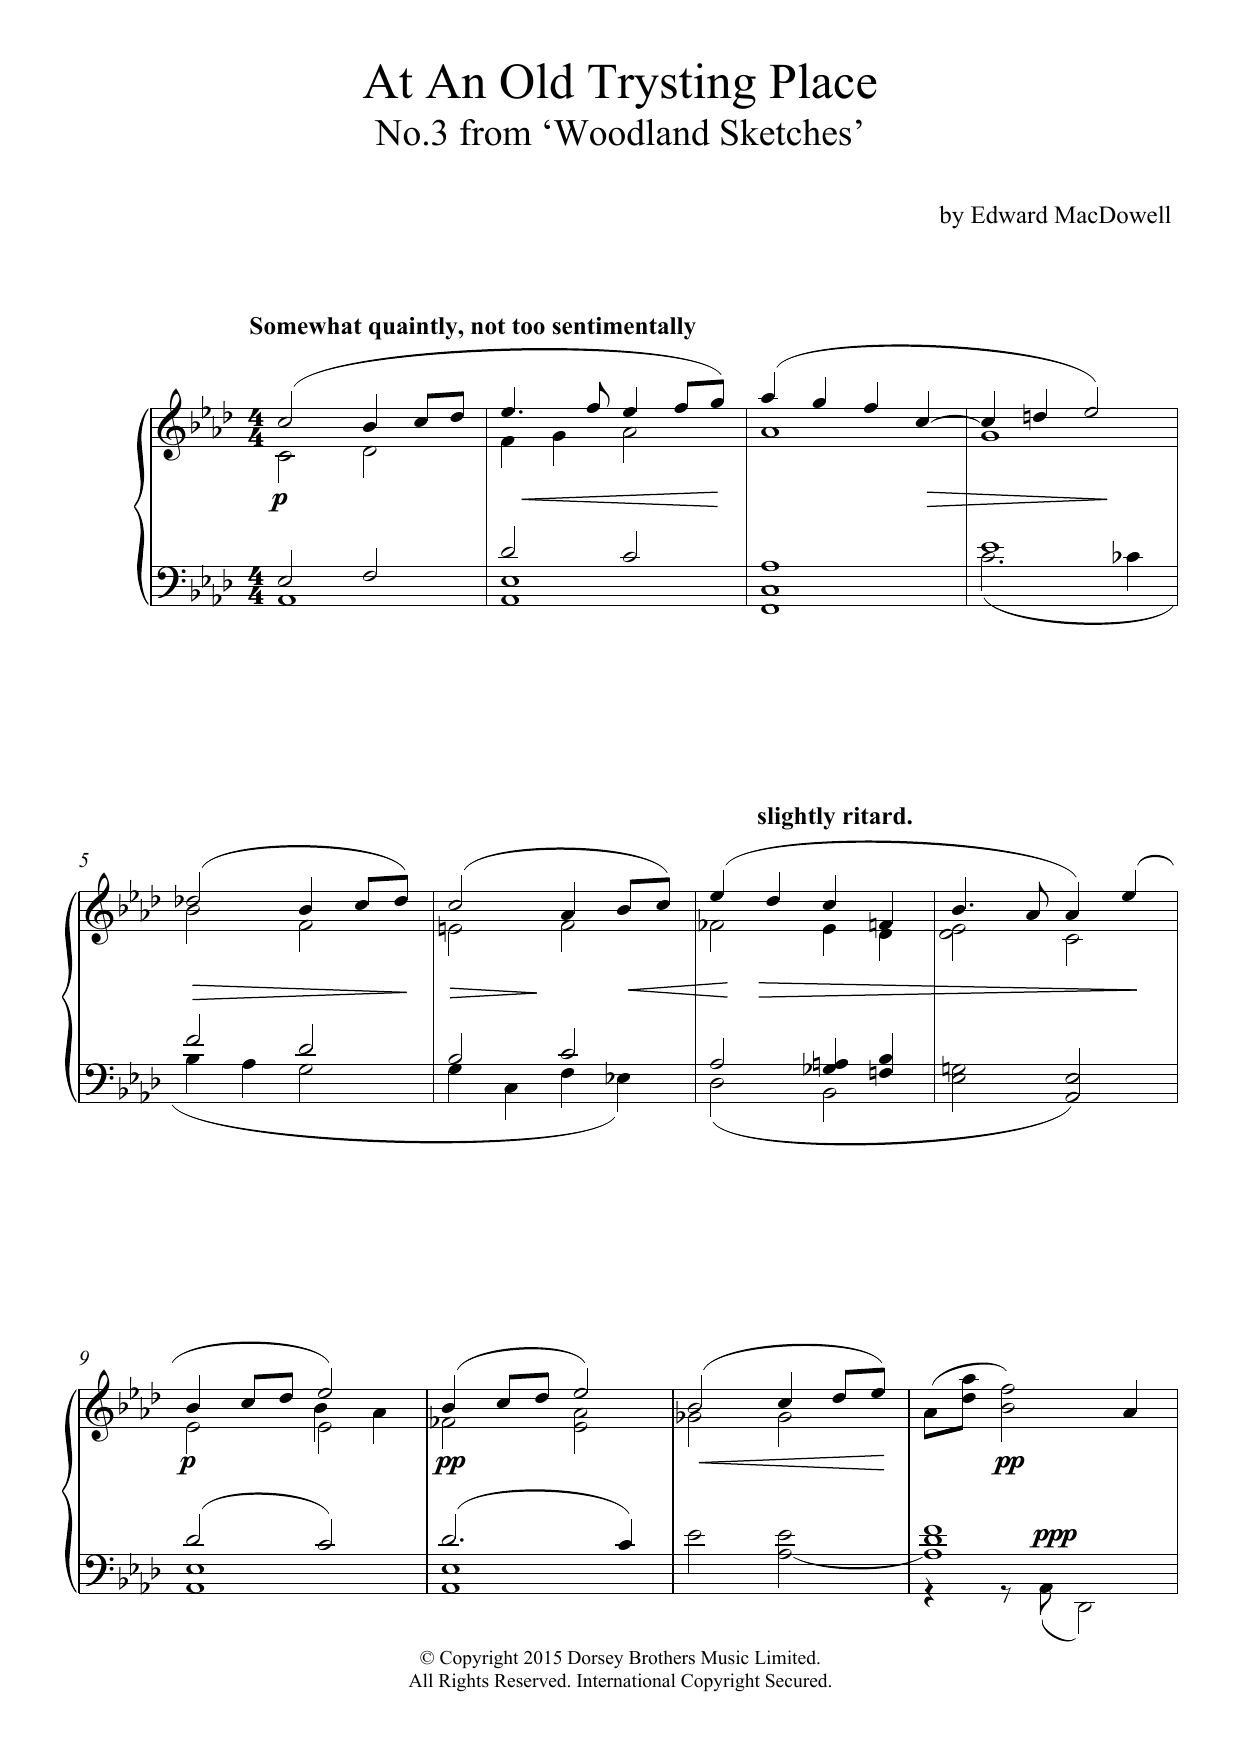 Edward MacDowell - At An Old Trysting Place (10 Woodland Sketches, Op.51, No.3)